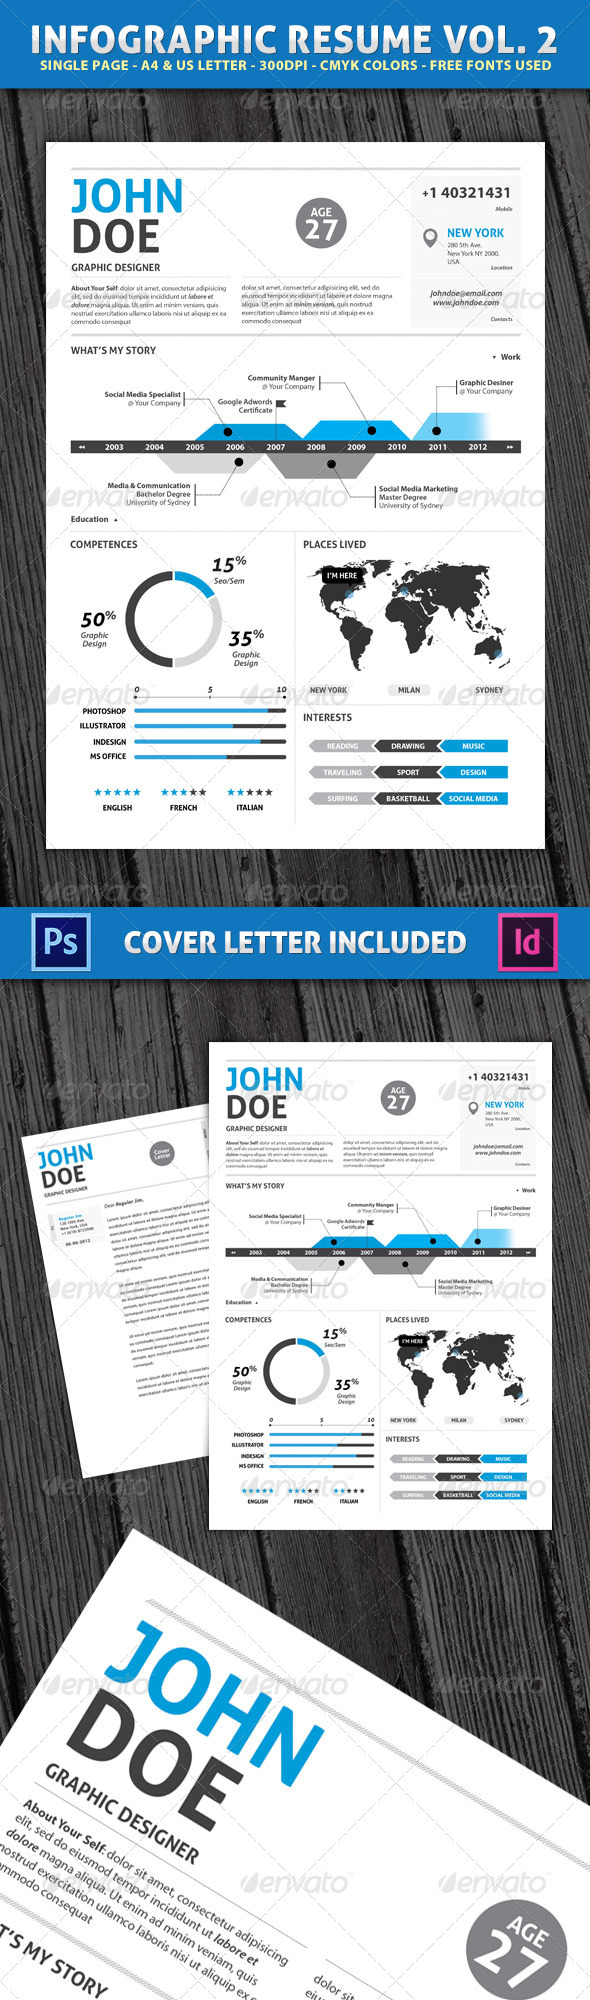 Infographic Resume with Cover Letter